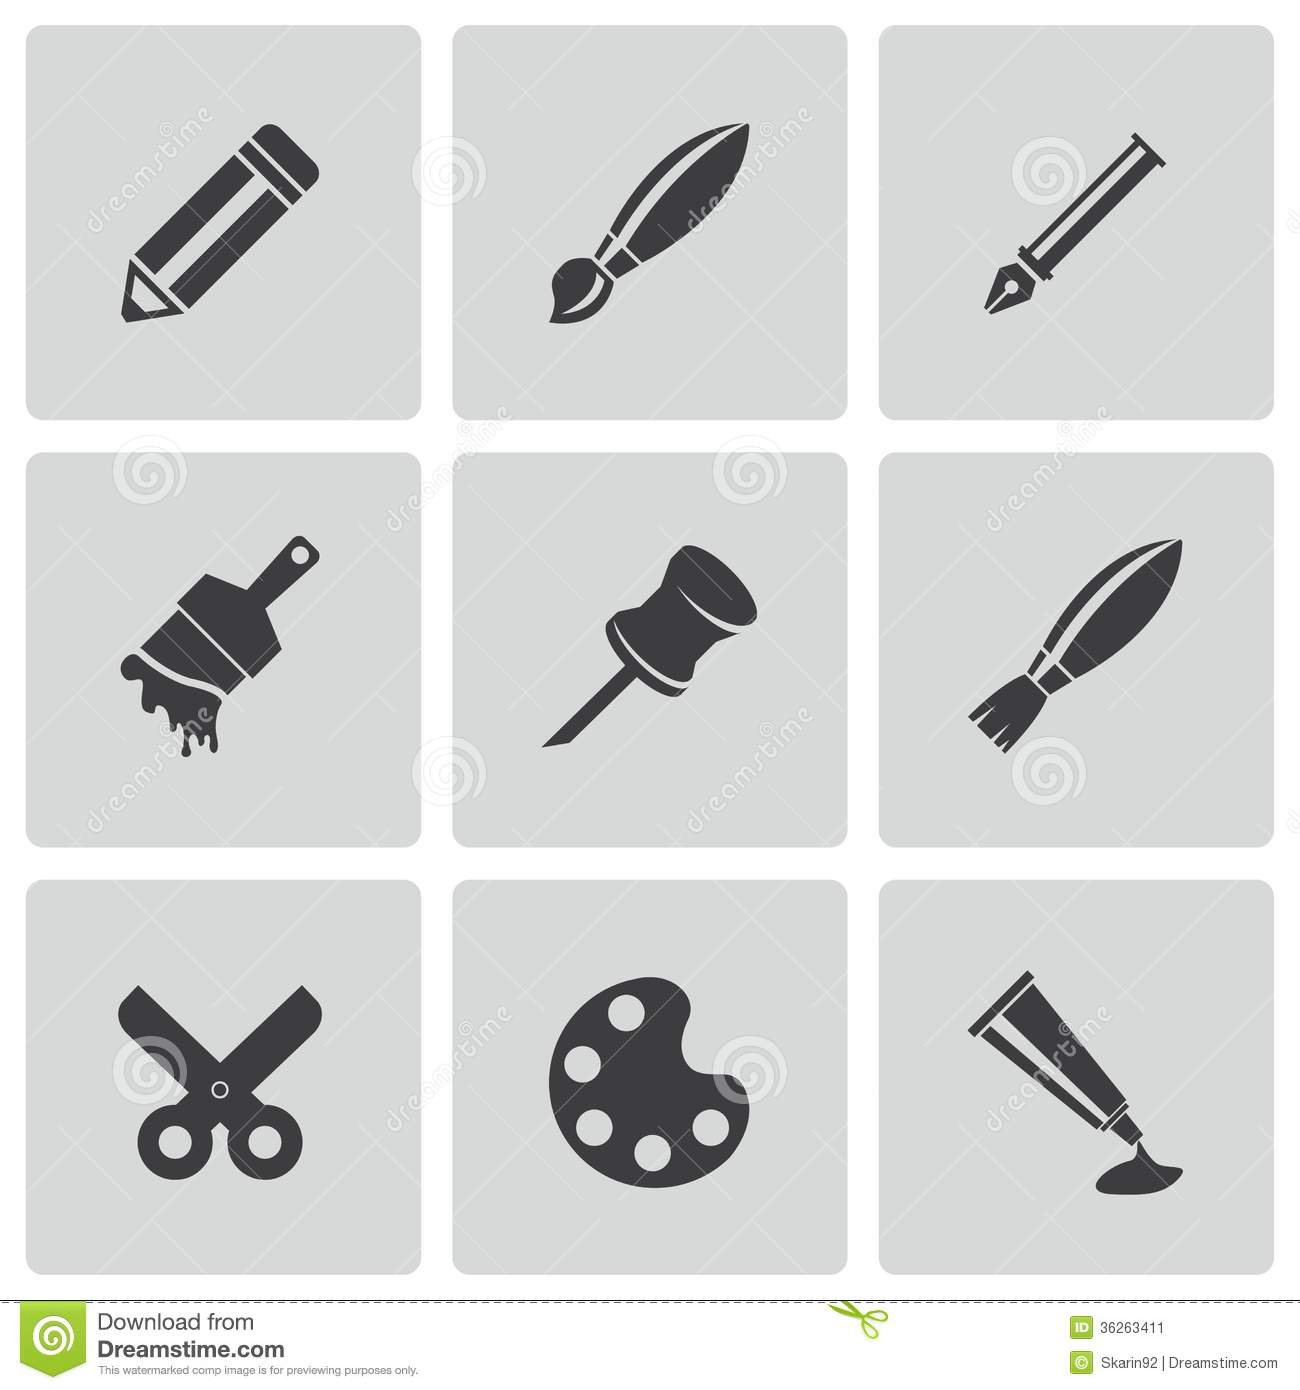 Tools Icons Black and White